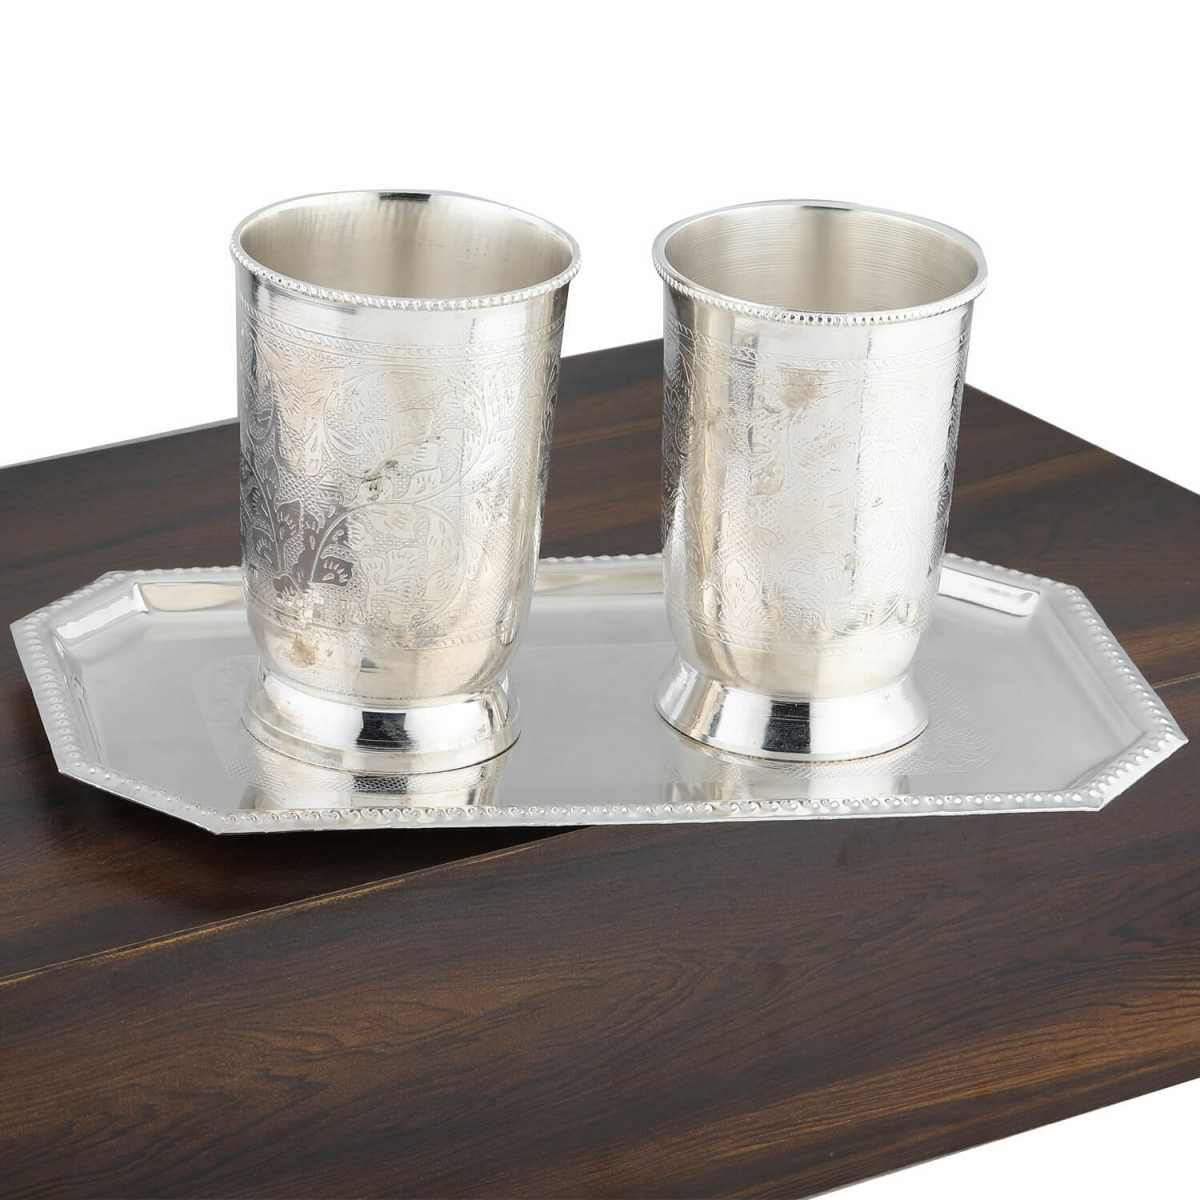 Silver Shine Silver Plated Self Textured Designer Water or Soft Drink Glasses Set of 2 With Tray